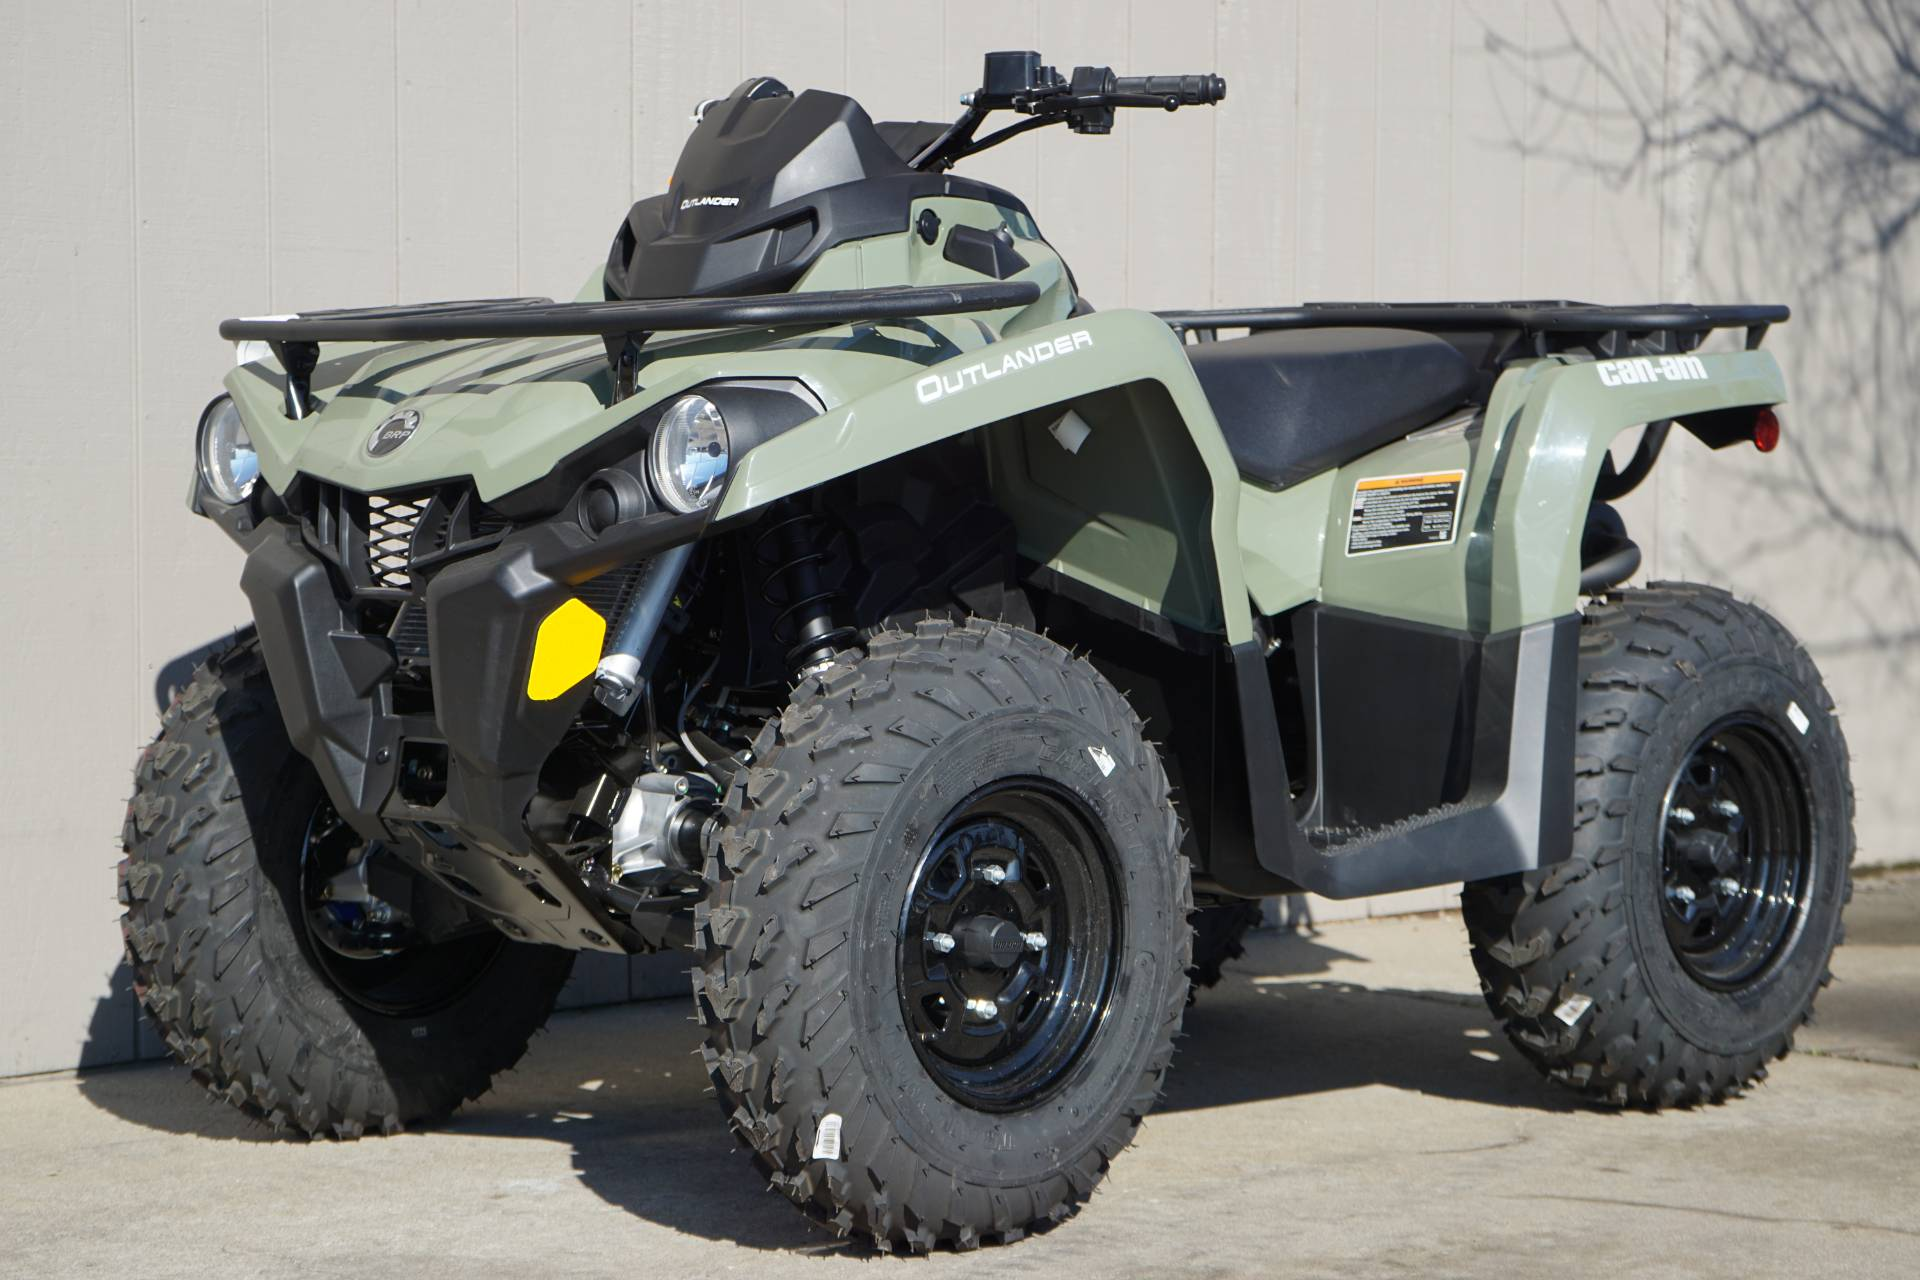 2019 Can-Am Outlander 450 for sale 78265